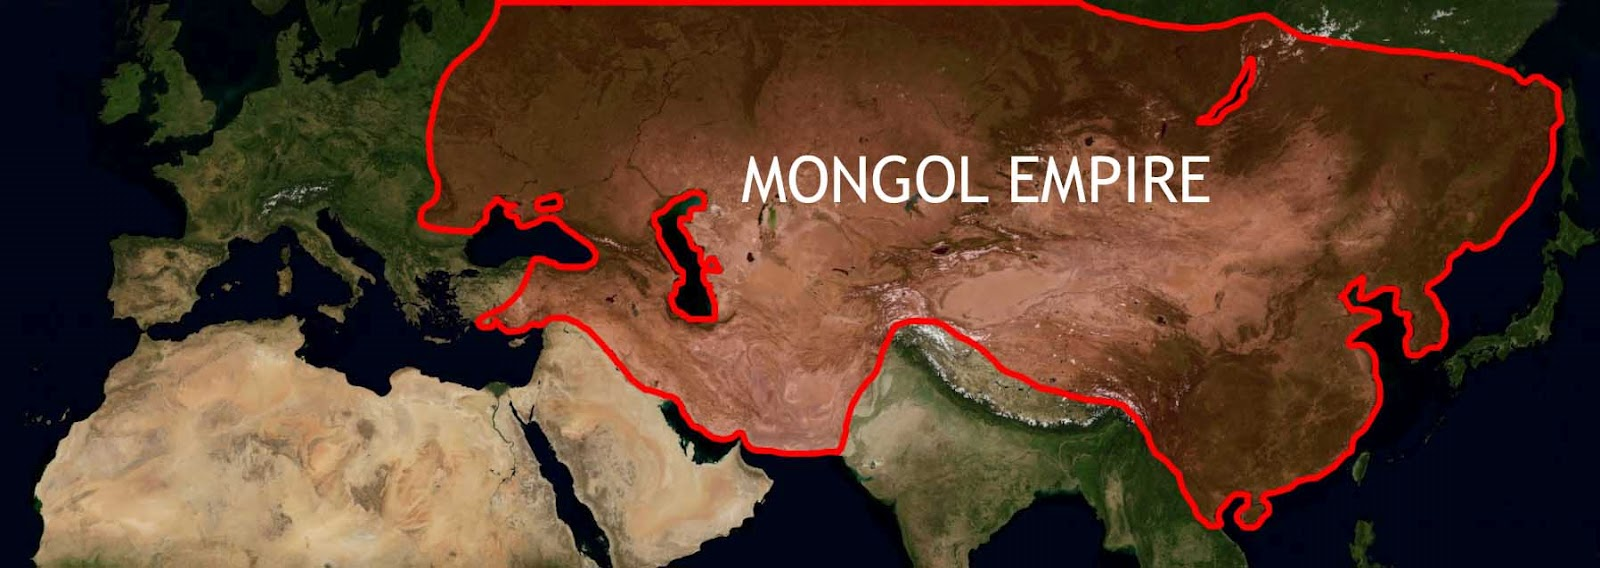 the exemplary discipline shown by mongol